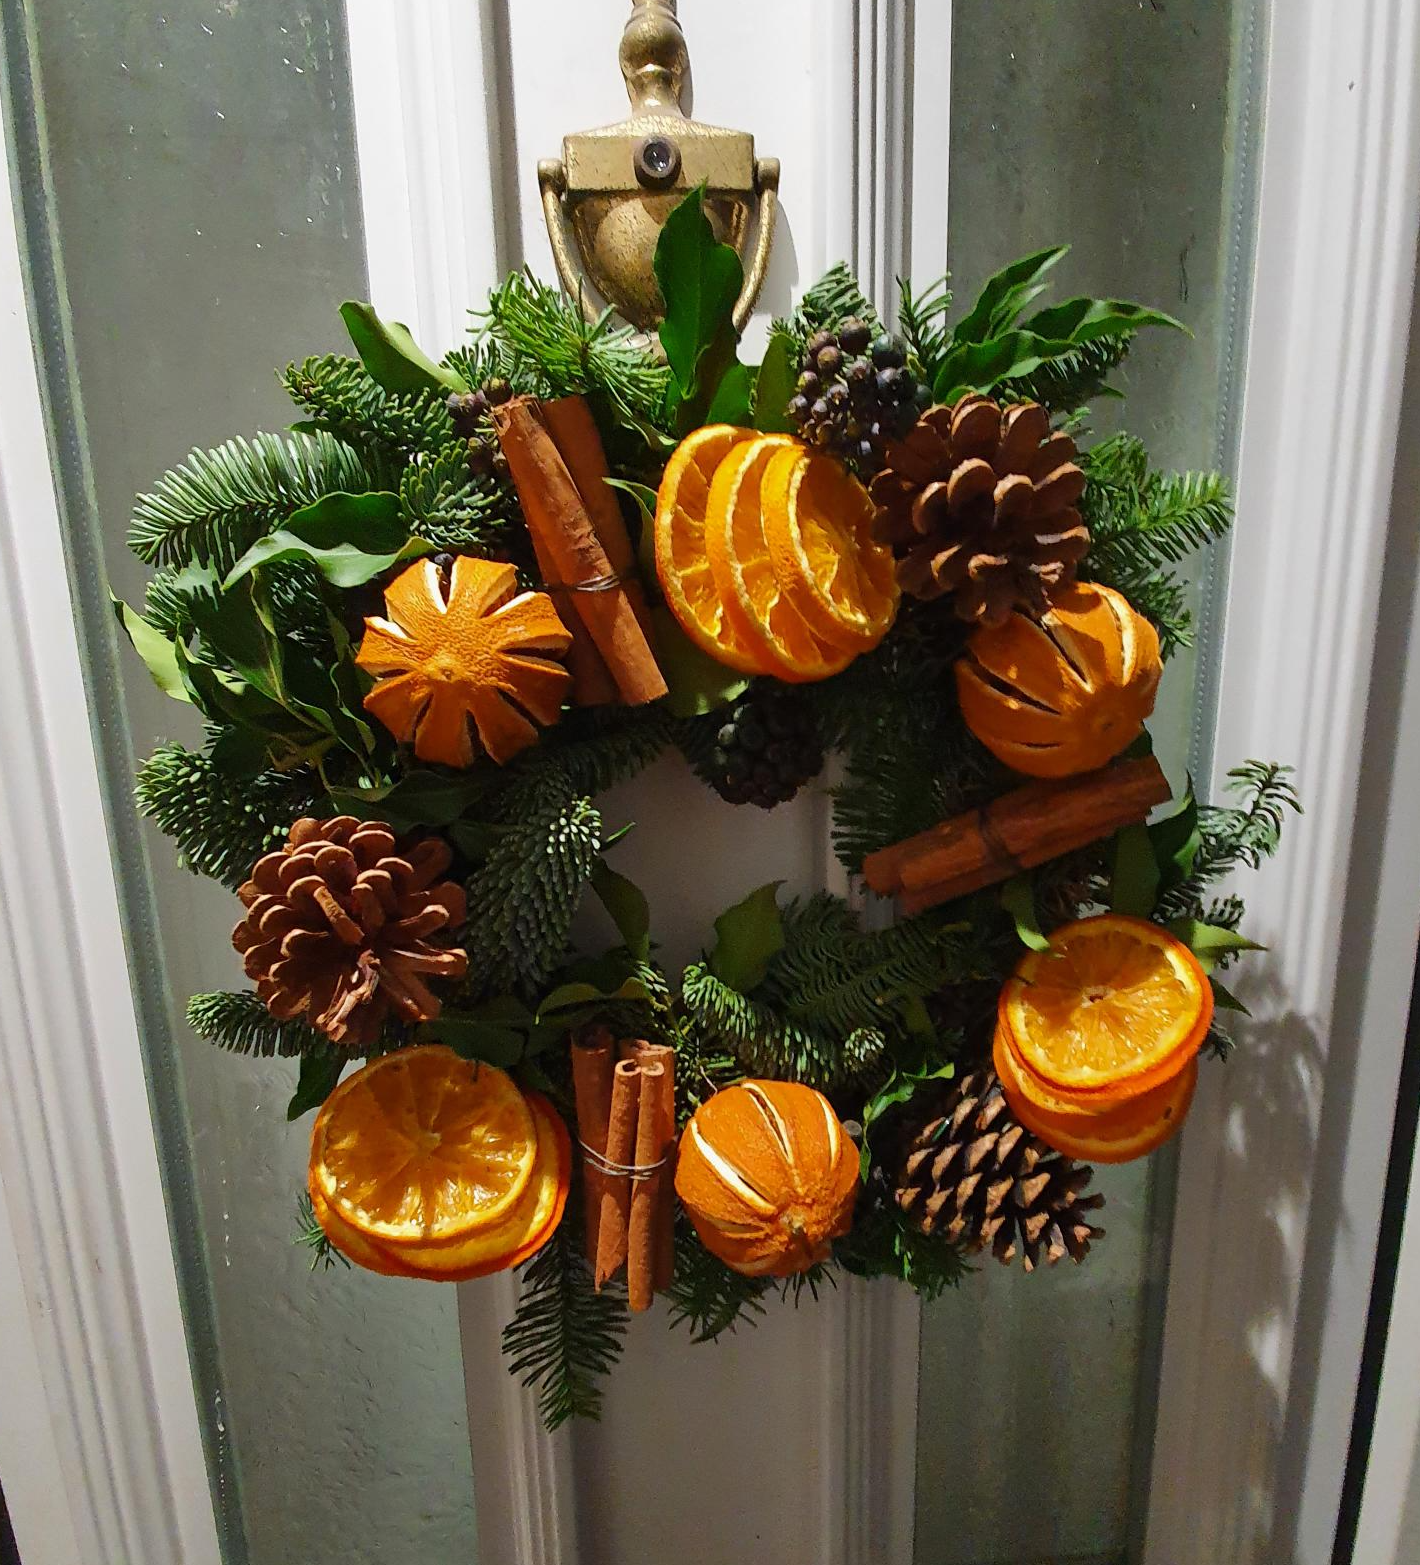 Christmas wreath with pine with dried fruits